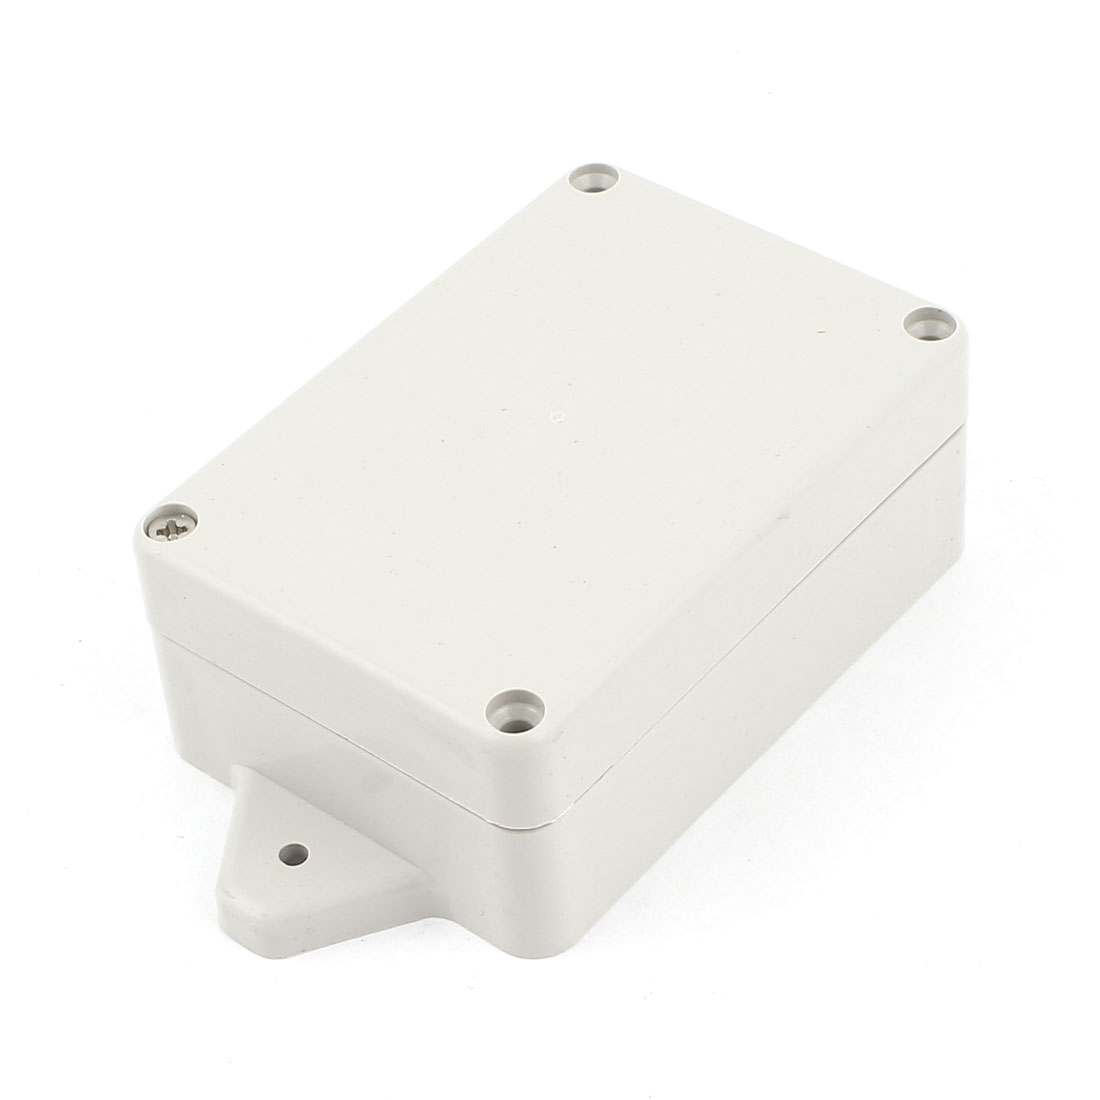 83mm x 58mm x 33mm Waterproof Plastic Sealed DIY Joint Electrical Junction Box